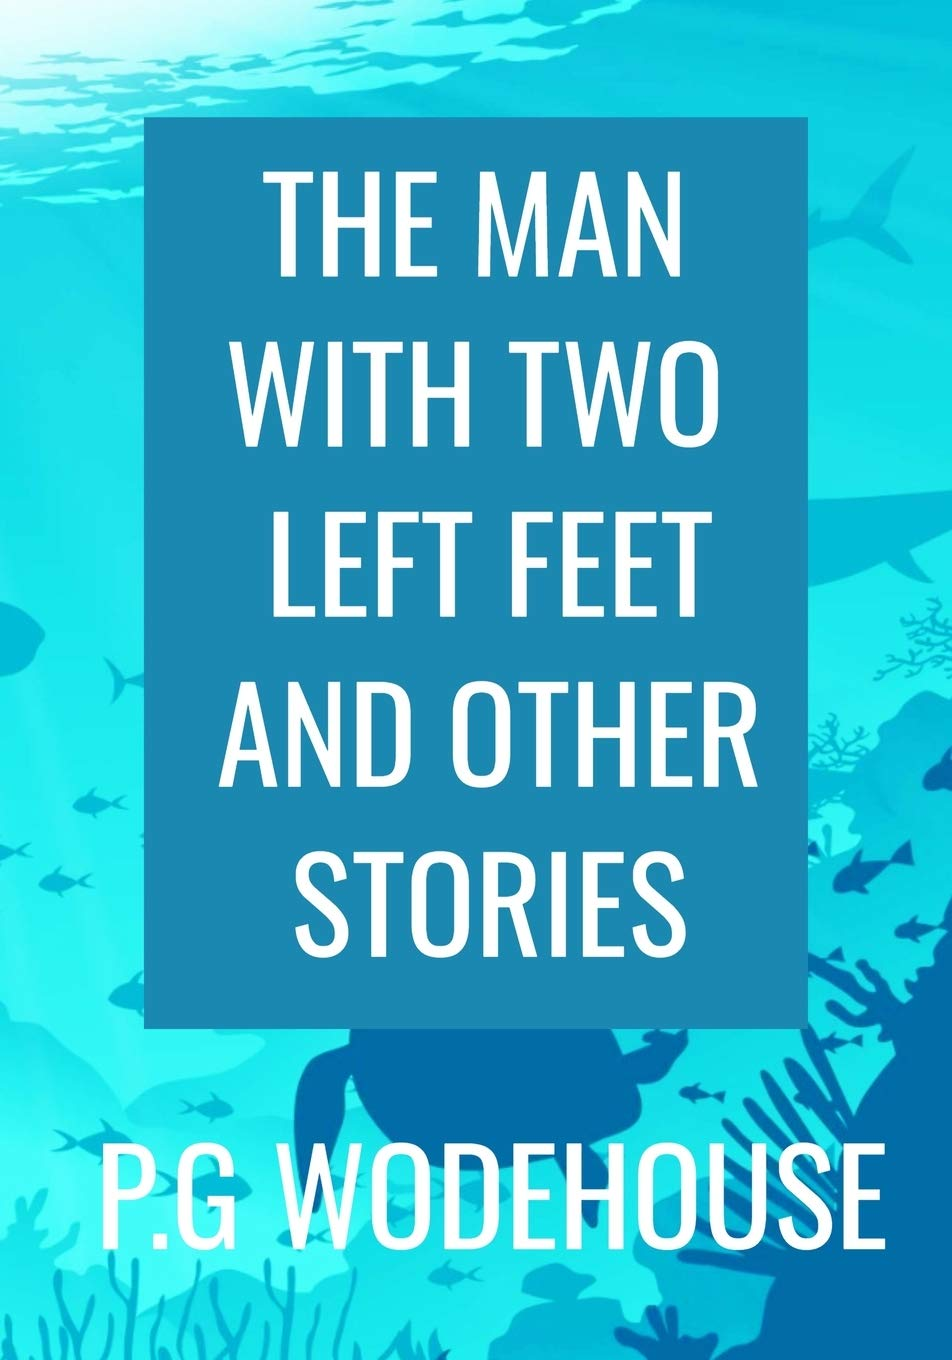 THE MAN WITH TWO LEFT FEET And Other Stories - P.G WODEHOUSE: Classic Edition